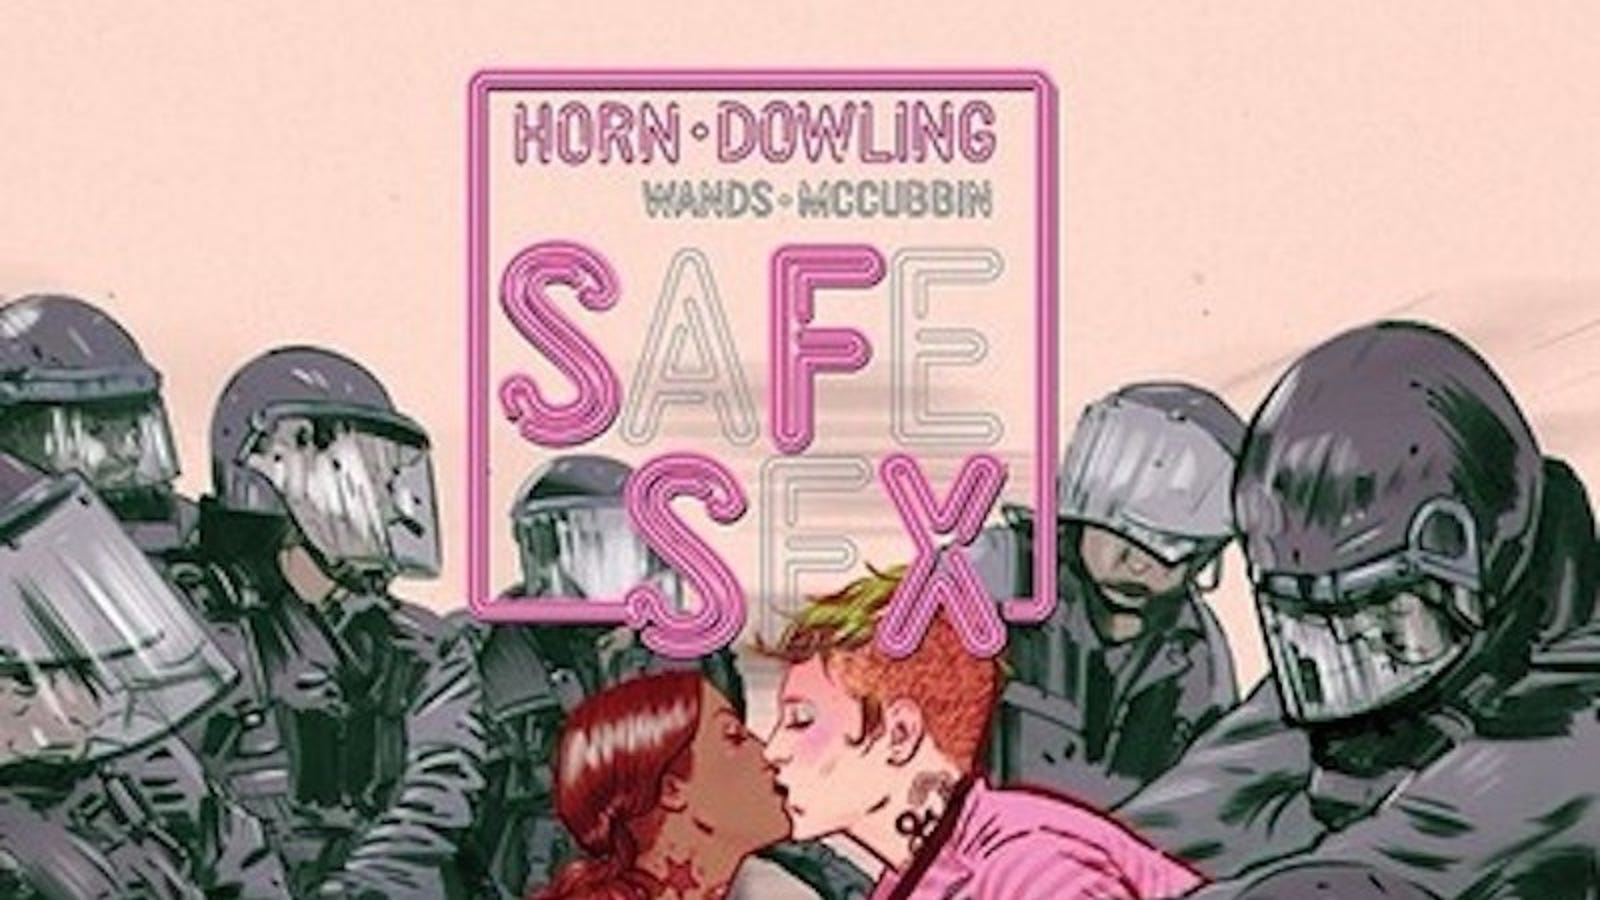 Tina Horn on Making SFSX, a Comic Where Queer Sex Workers Are Heroes